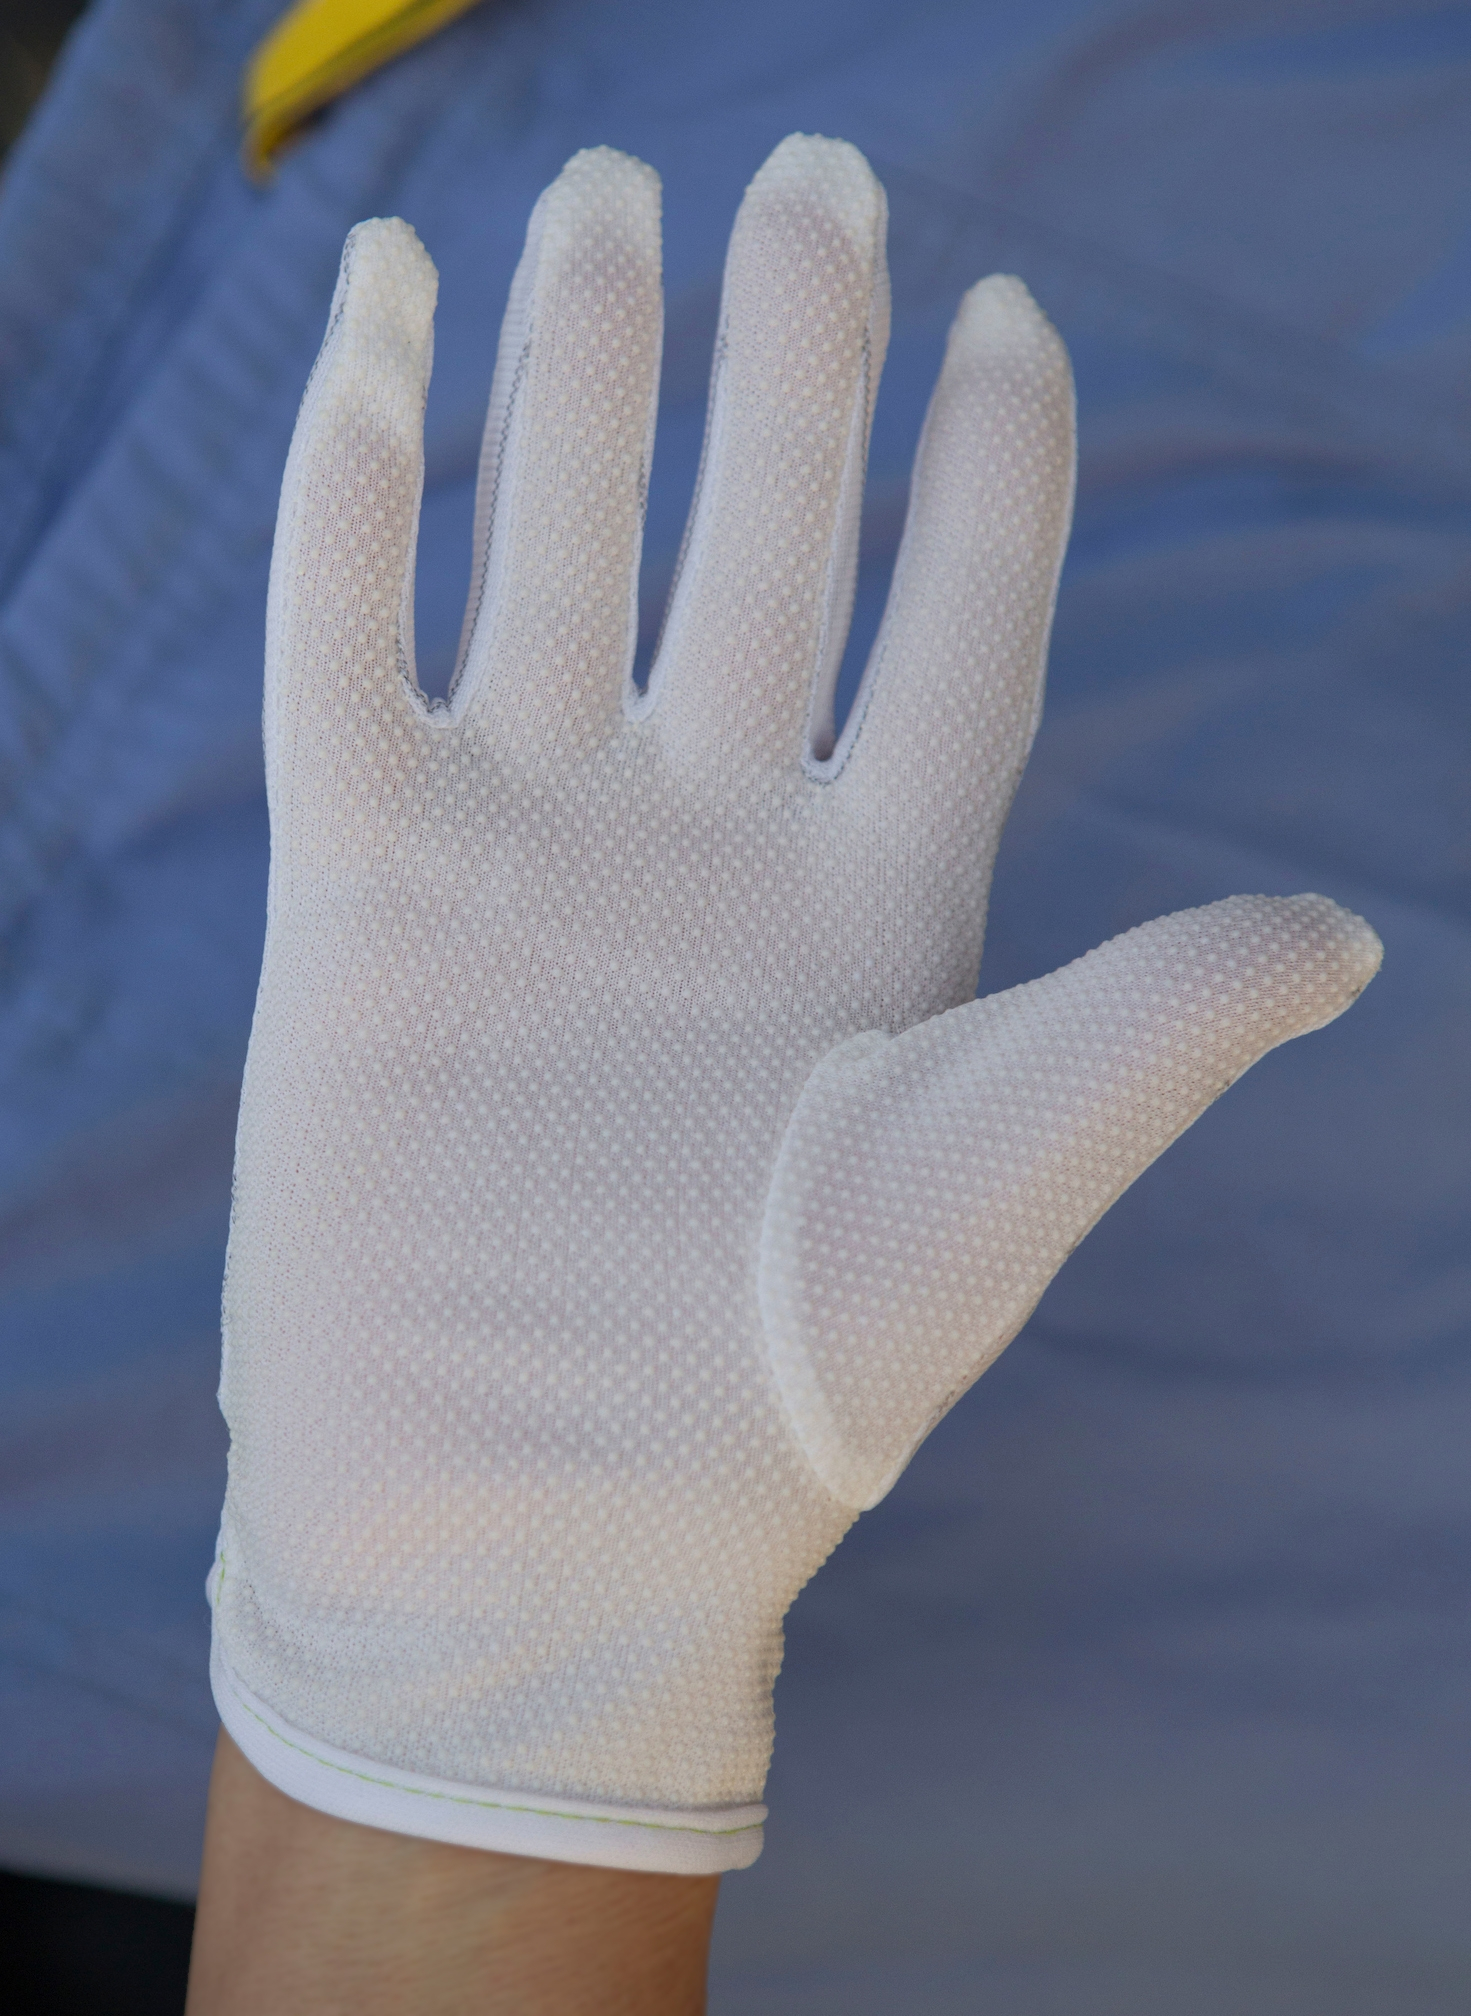 Lab gloves: lint-free, static-free (palm view)